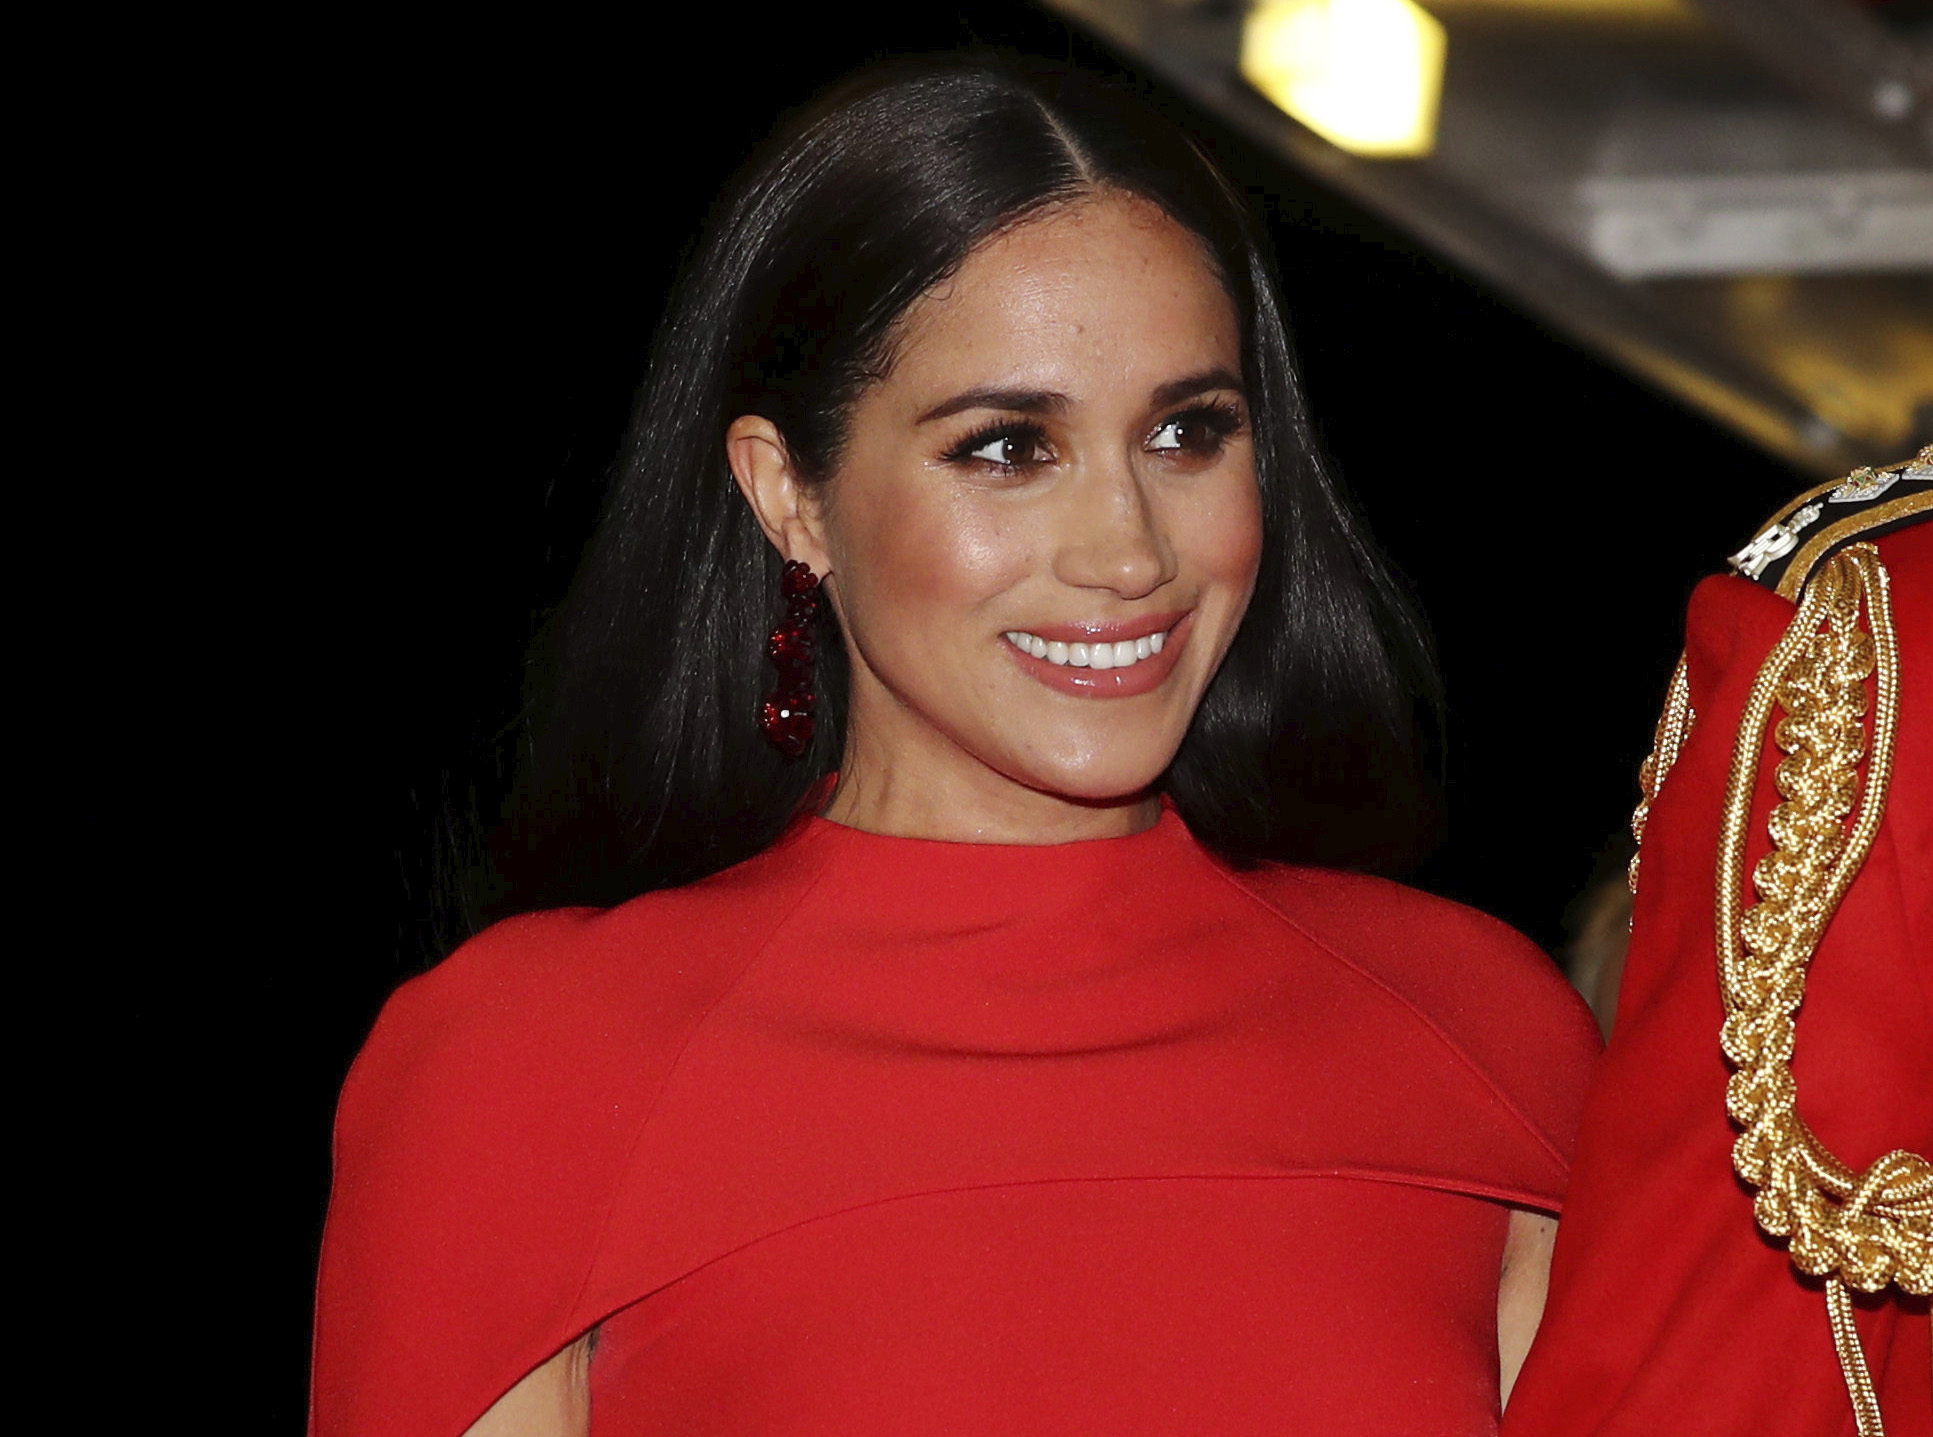 In this Saturday March 7, 2020 file photo, Meghan, Duchess of Sussex with Prince Harry arrives at the Royal Albert Hall in London, to attend the Mountbatten Festival of Music. (Simon Dawson/Pool via AP, File)